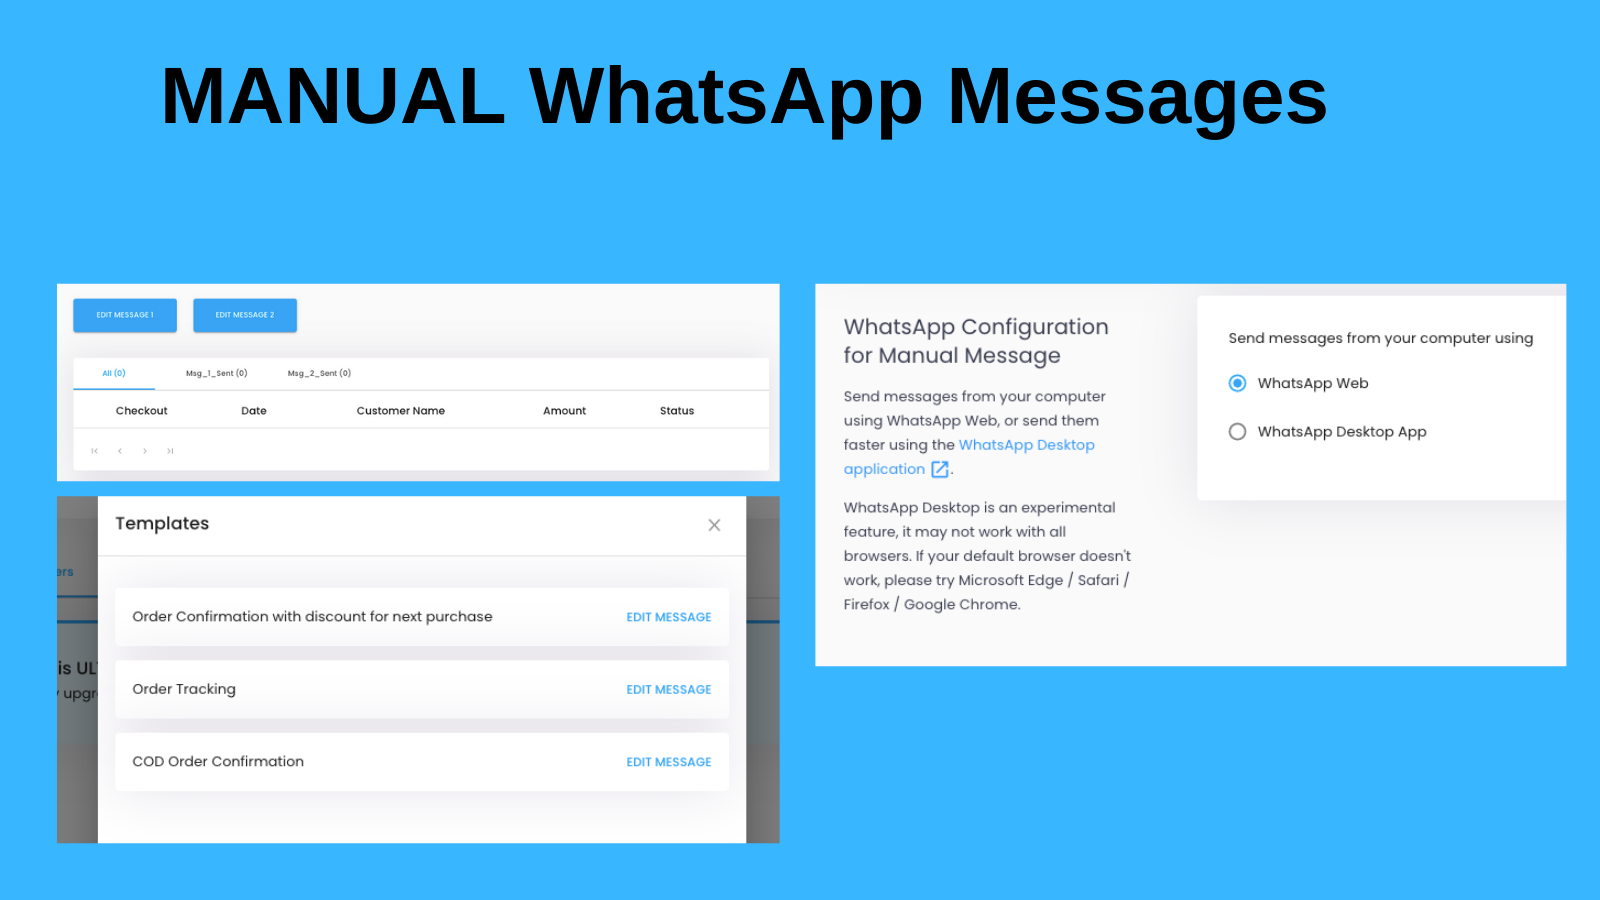 WhatsApp Manual Messages